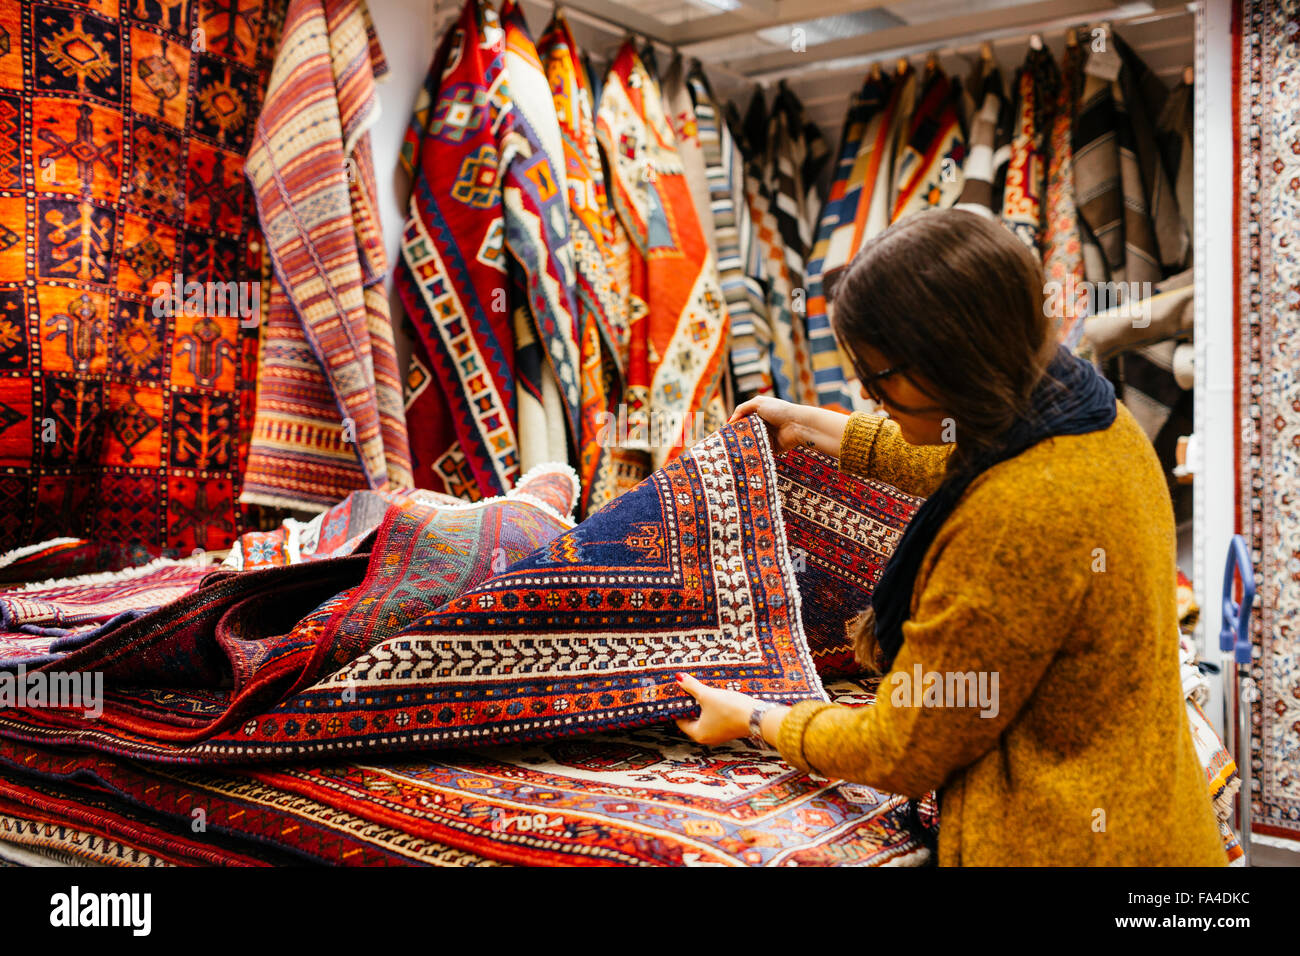 Young woman shopping for rugs in furniture warehouse - Stock Image